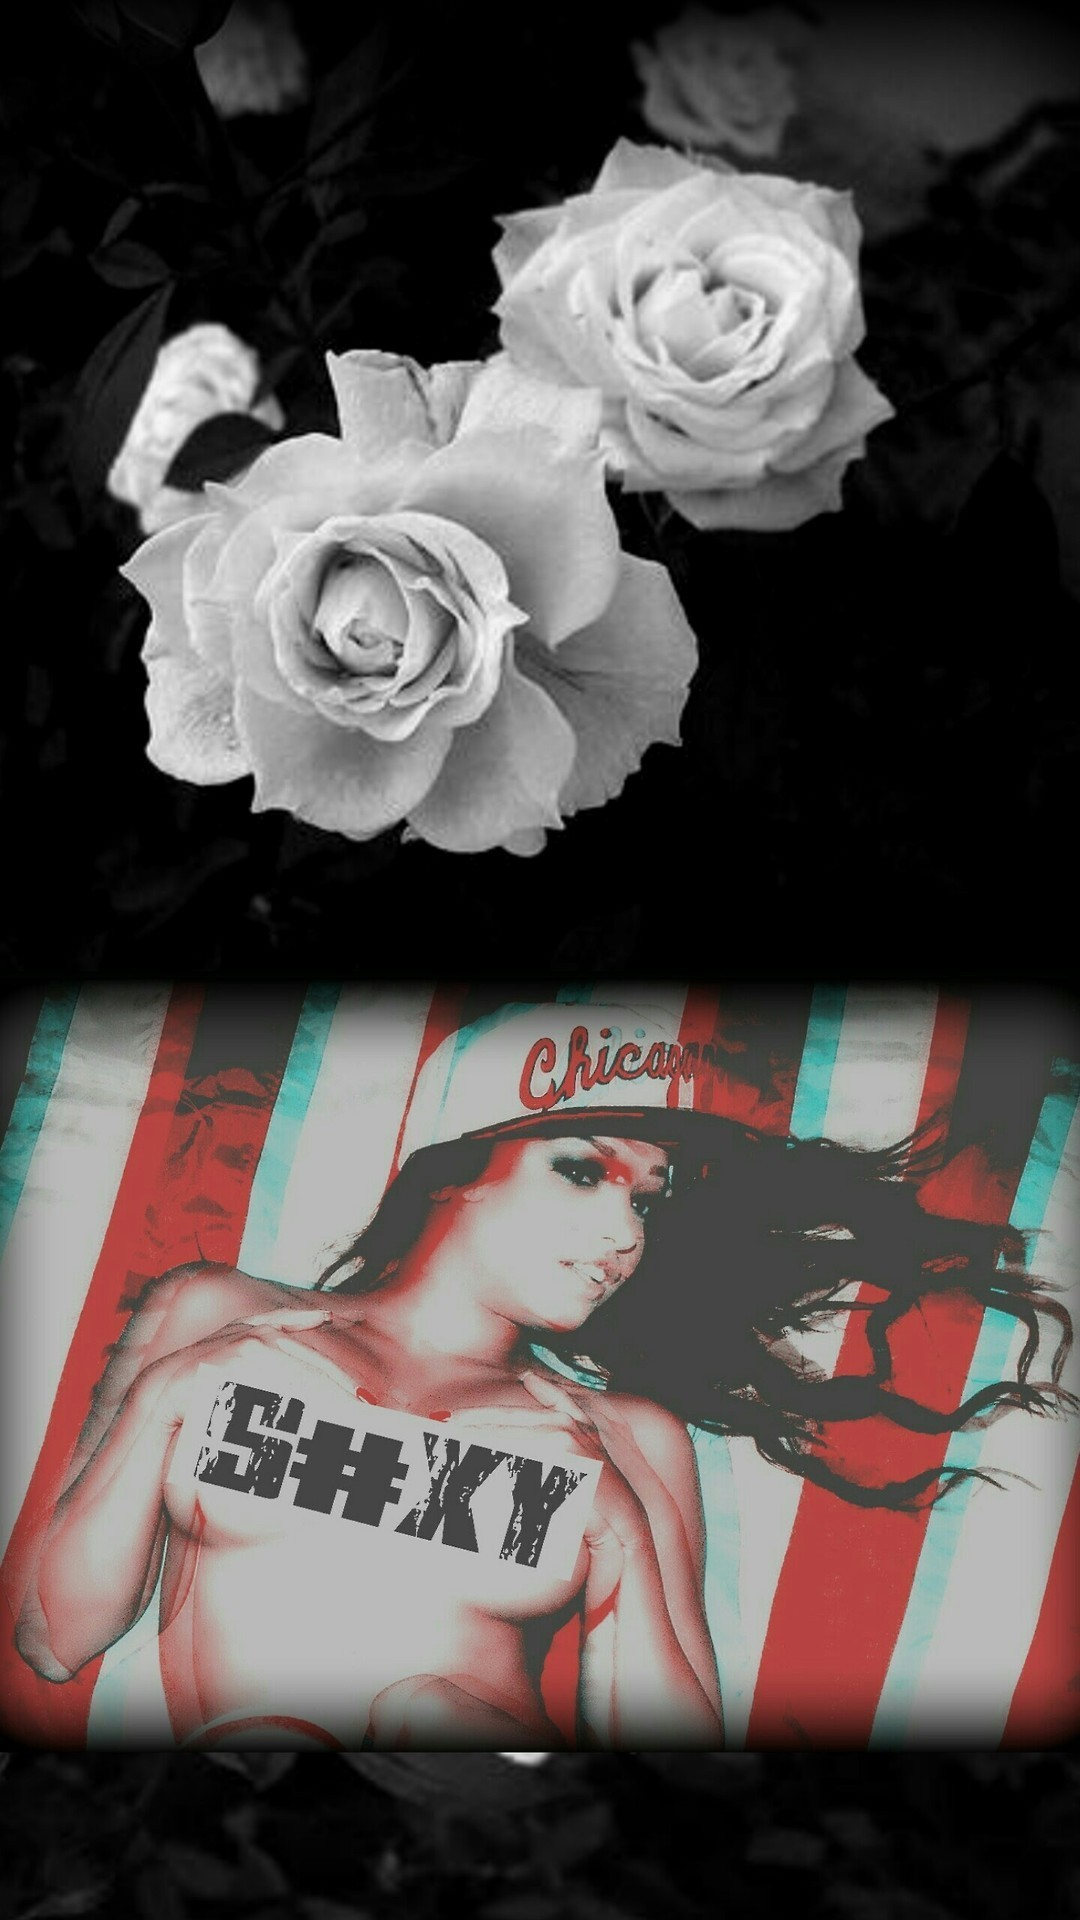 1080x1920 dope wallpapers illest wallpapers mobile wallpaper wallpapers  nikki-screens.tumblr.com